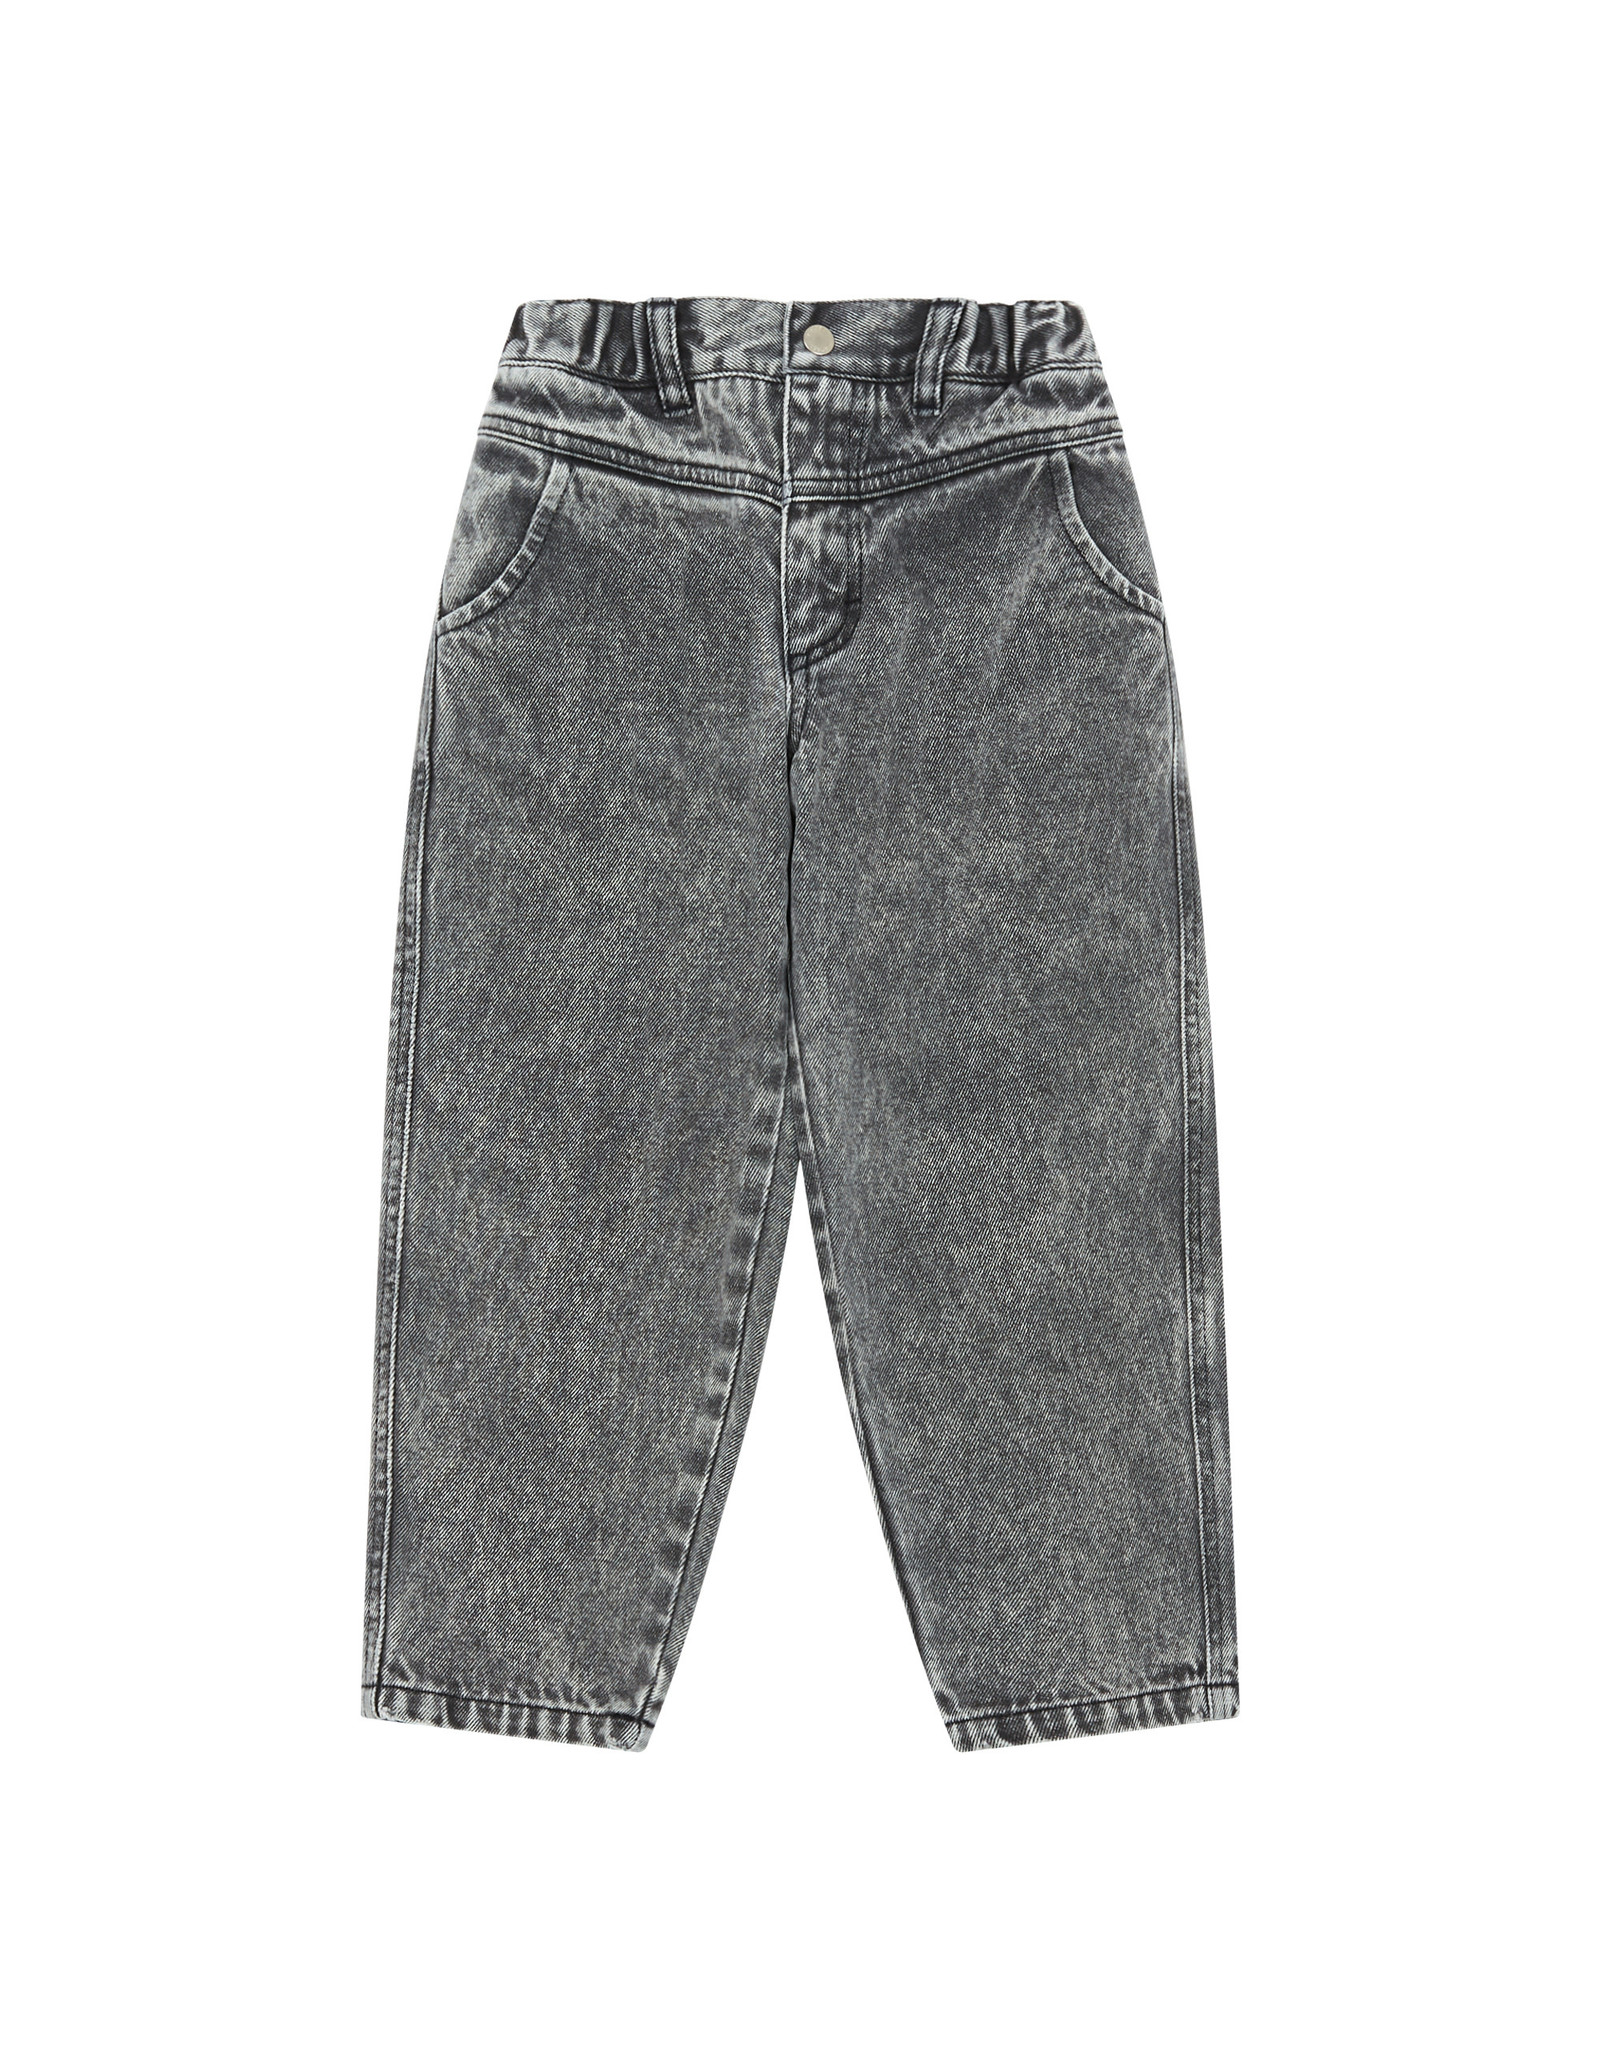 Hundred Pieces Hundred Pieces FW20 stonewashed denim jeans